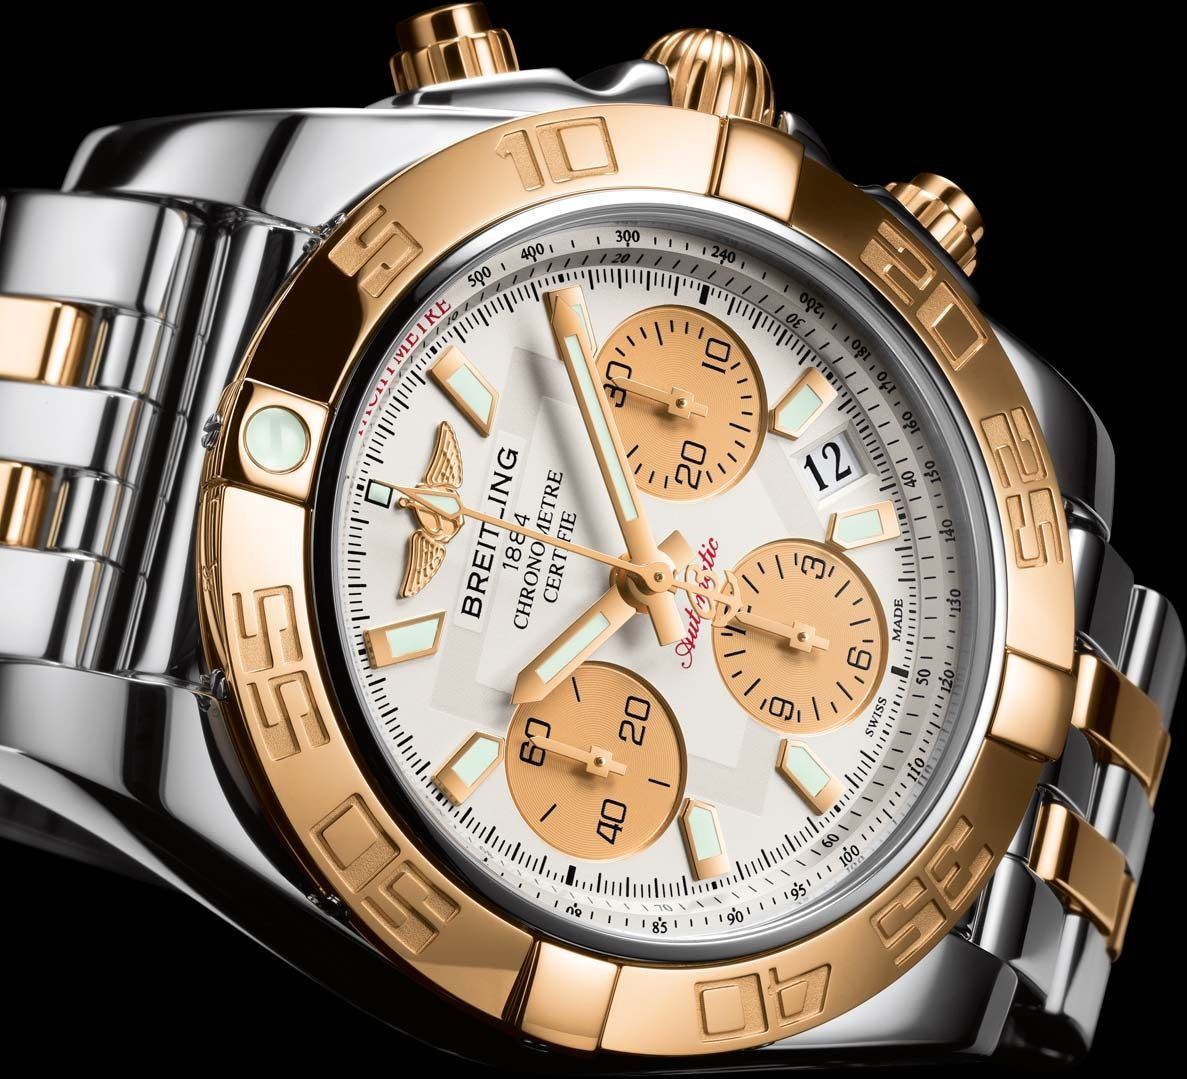 Breitling CHRONOMAT 41 Rose and Steel/ Old Northeast Jewelers is your Authorized Dealer for Breitling Fine Timepieces. 727-898-4377 or 813-875-3935 Sales@oldnortheastjewelers.com to order via email or visit our website at www.oldnortheastjewelers.com